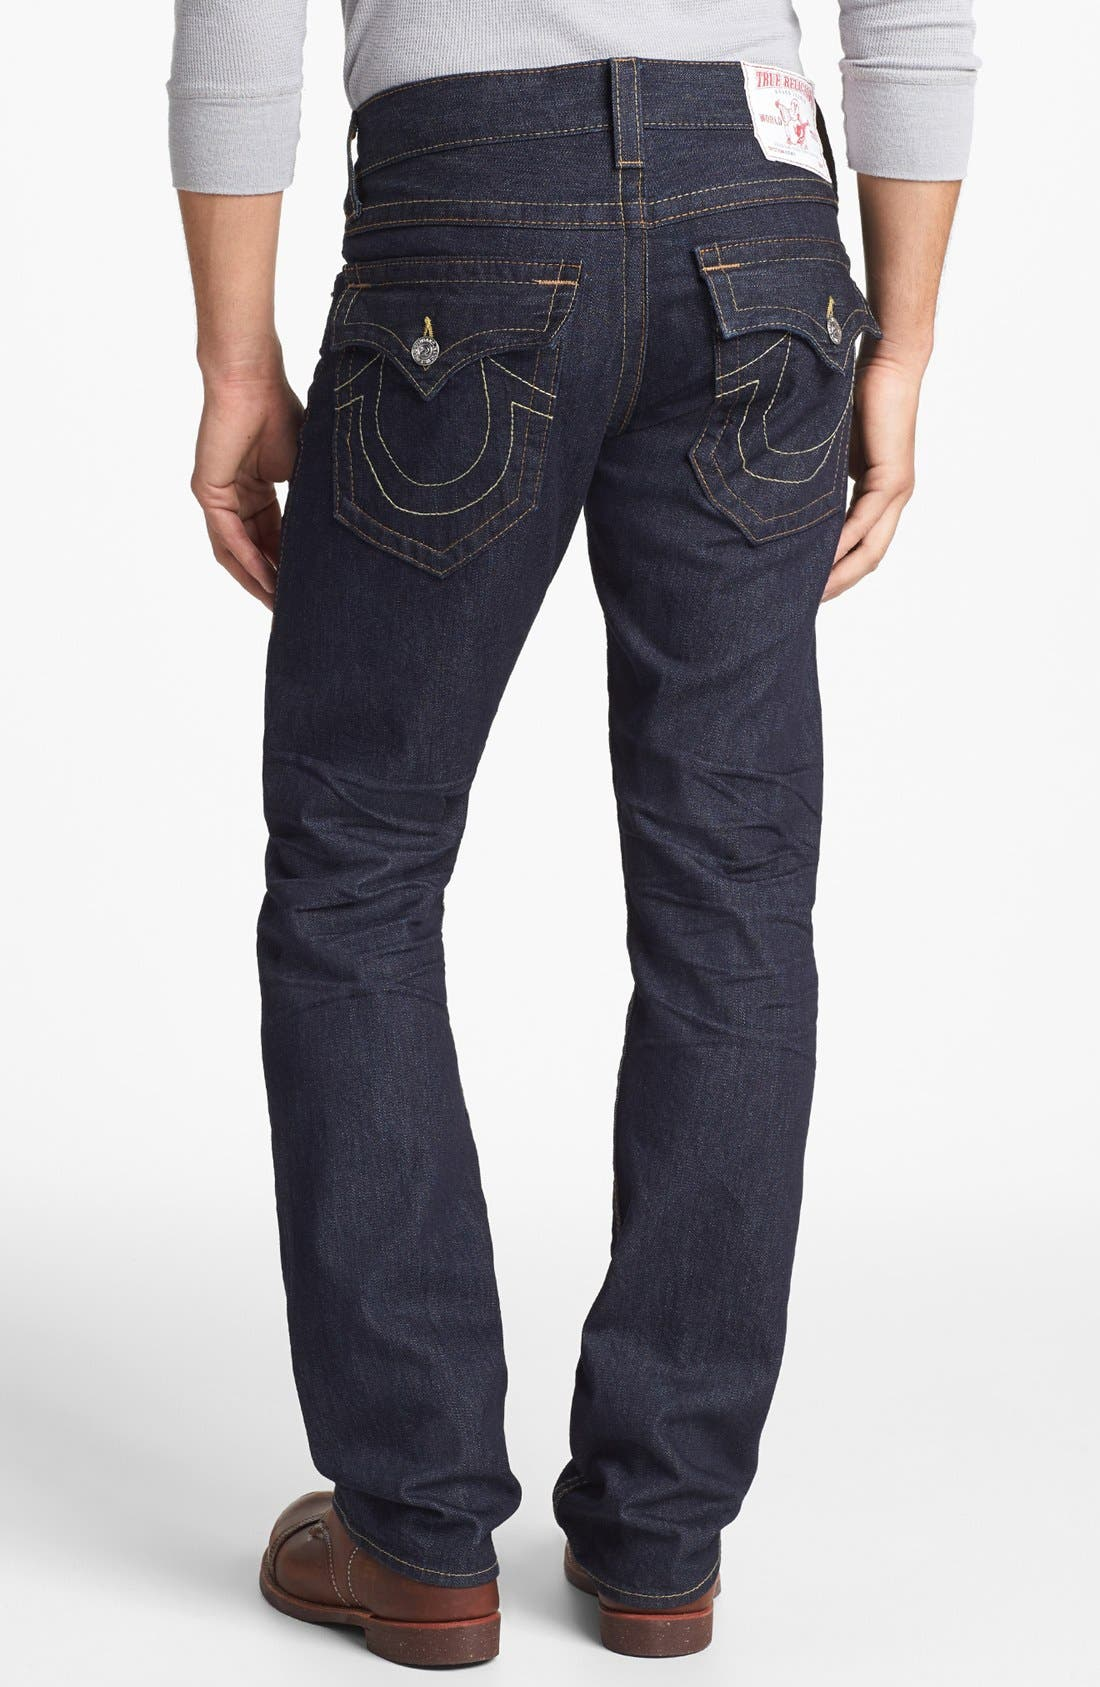 Main Image - True Religion Brand Jeans 'Ricky' Relaxed Fit Jeans (Inglorious)